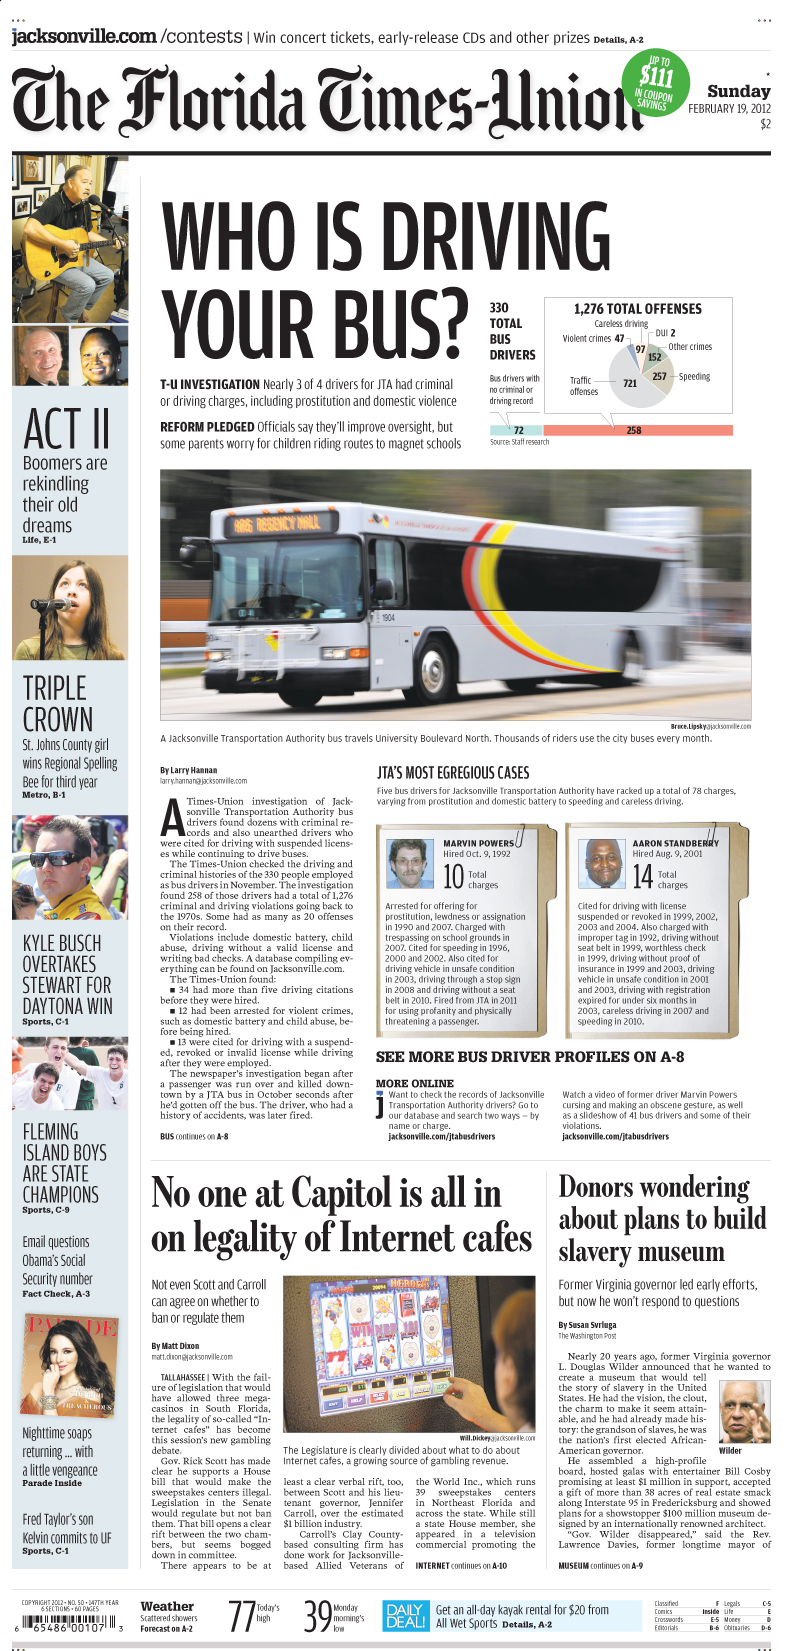 Larry Hannan and Florida Times-Union investigation of Jacksonville Transportation Authority bus drivers